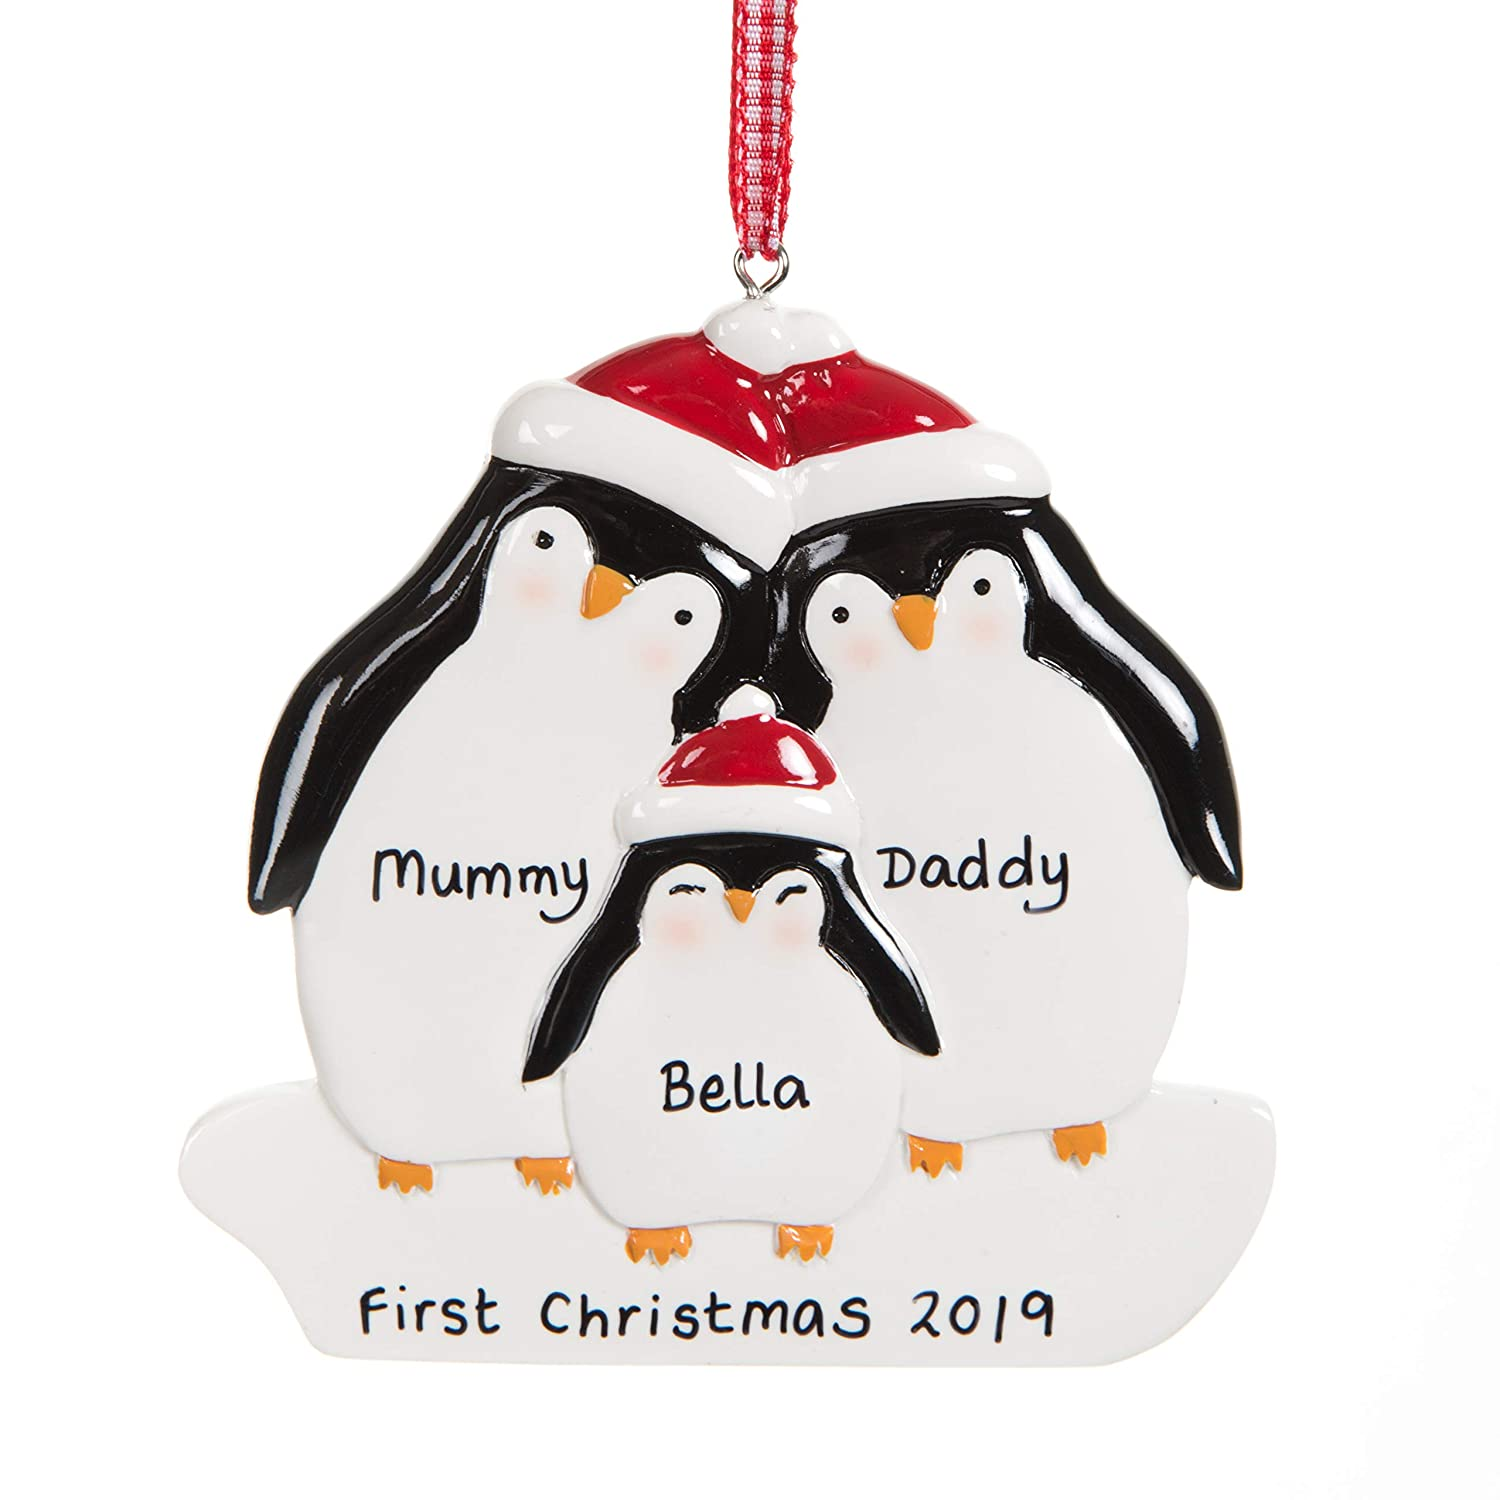 Personalised Christmas Decoration Family S First Decoration My 1st Xmas Decoration Baby Gift Ornament